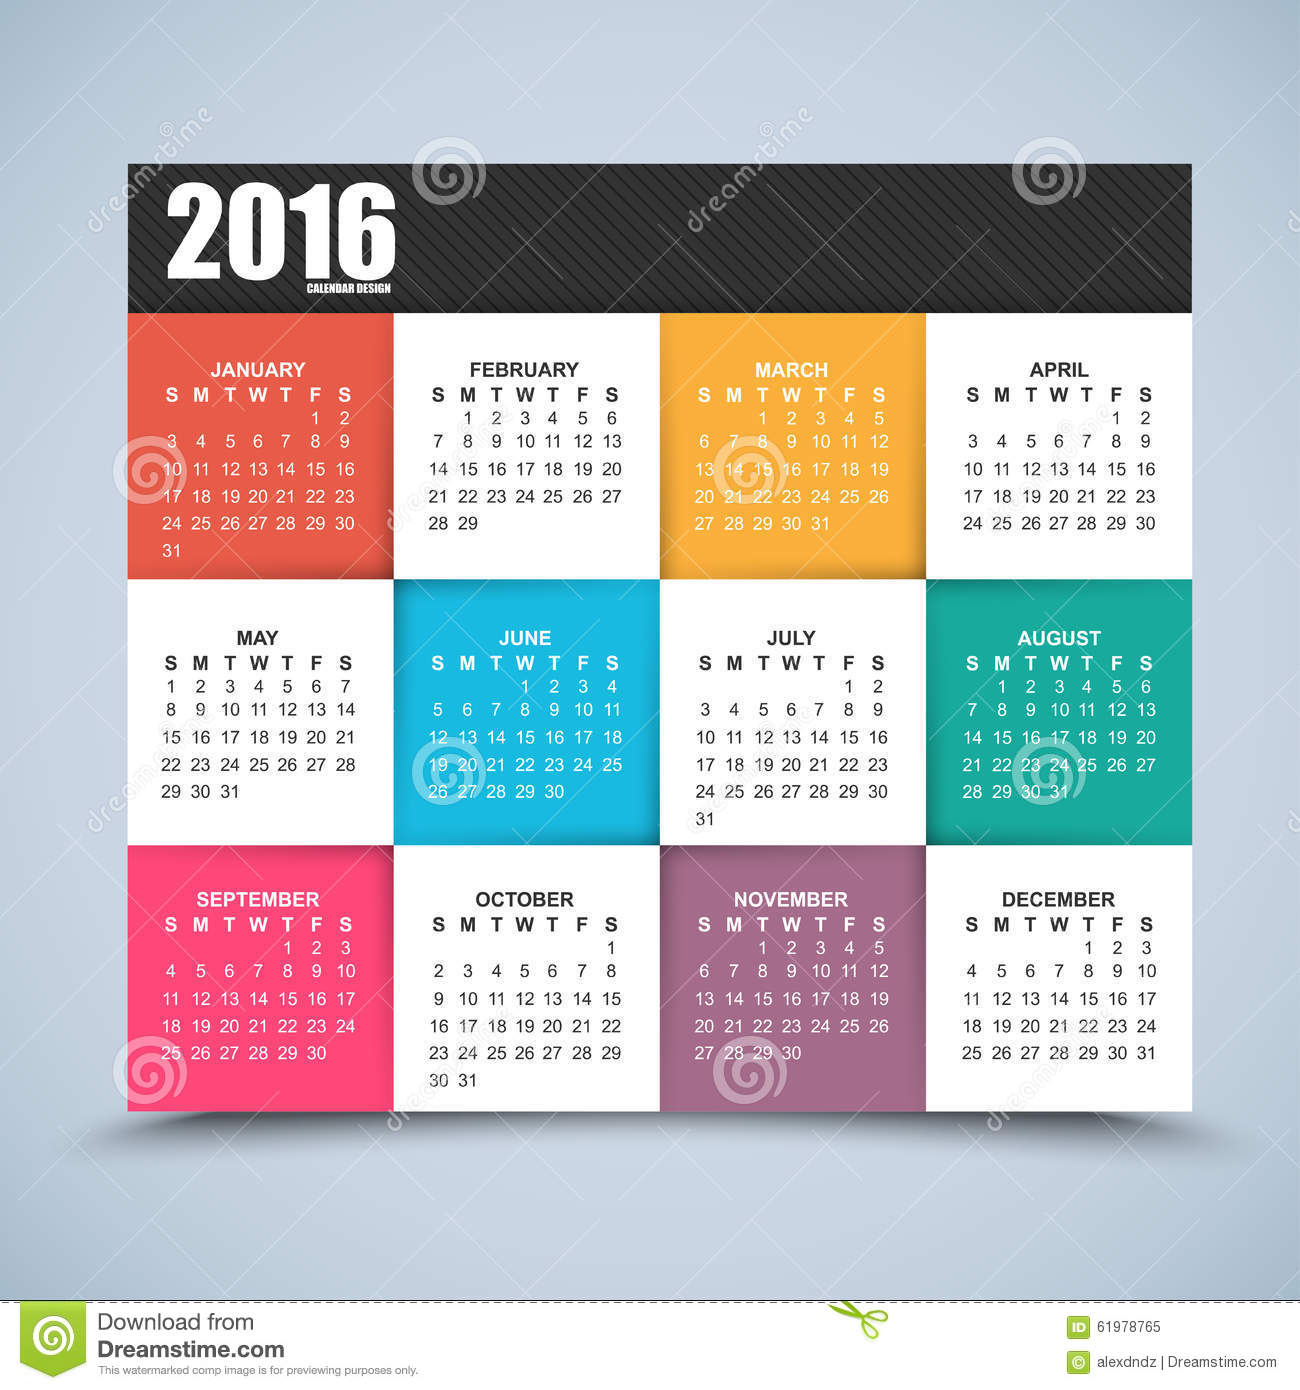 Calendar Design With Photos : Calendar design year stock vector image